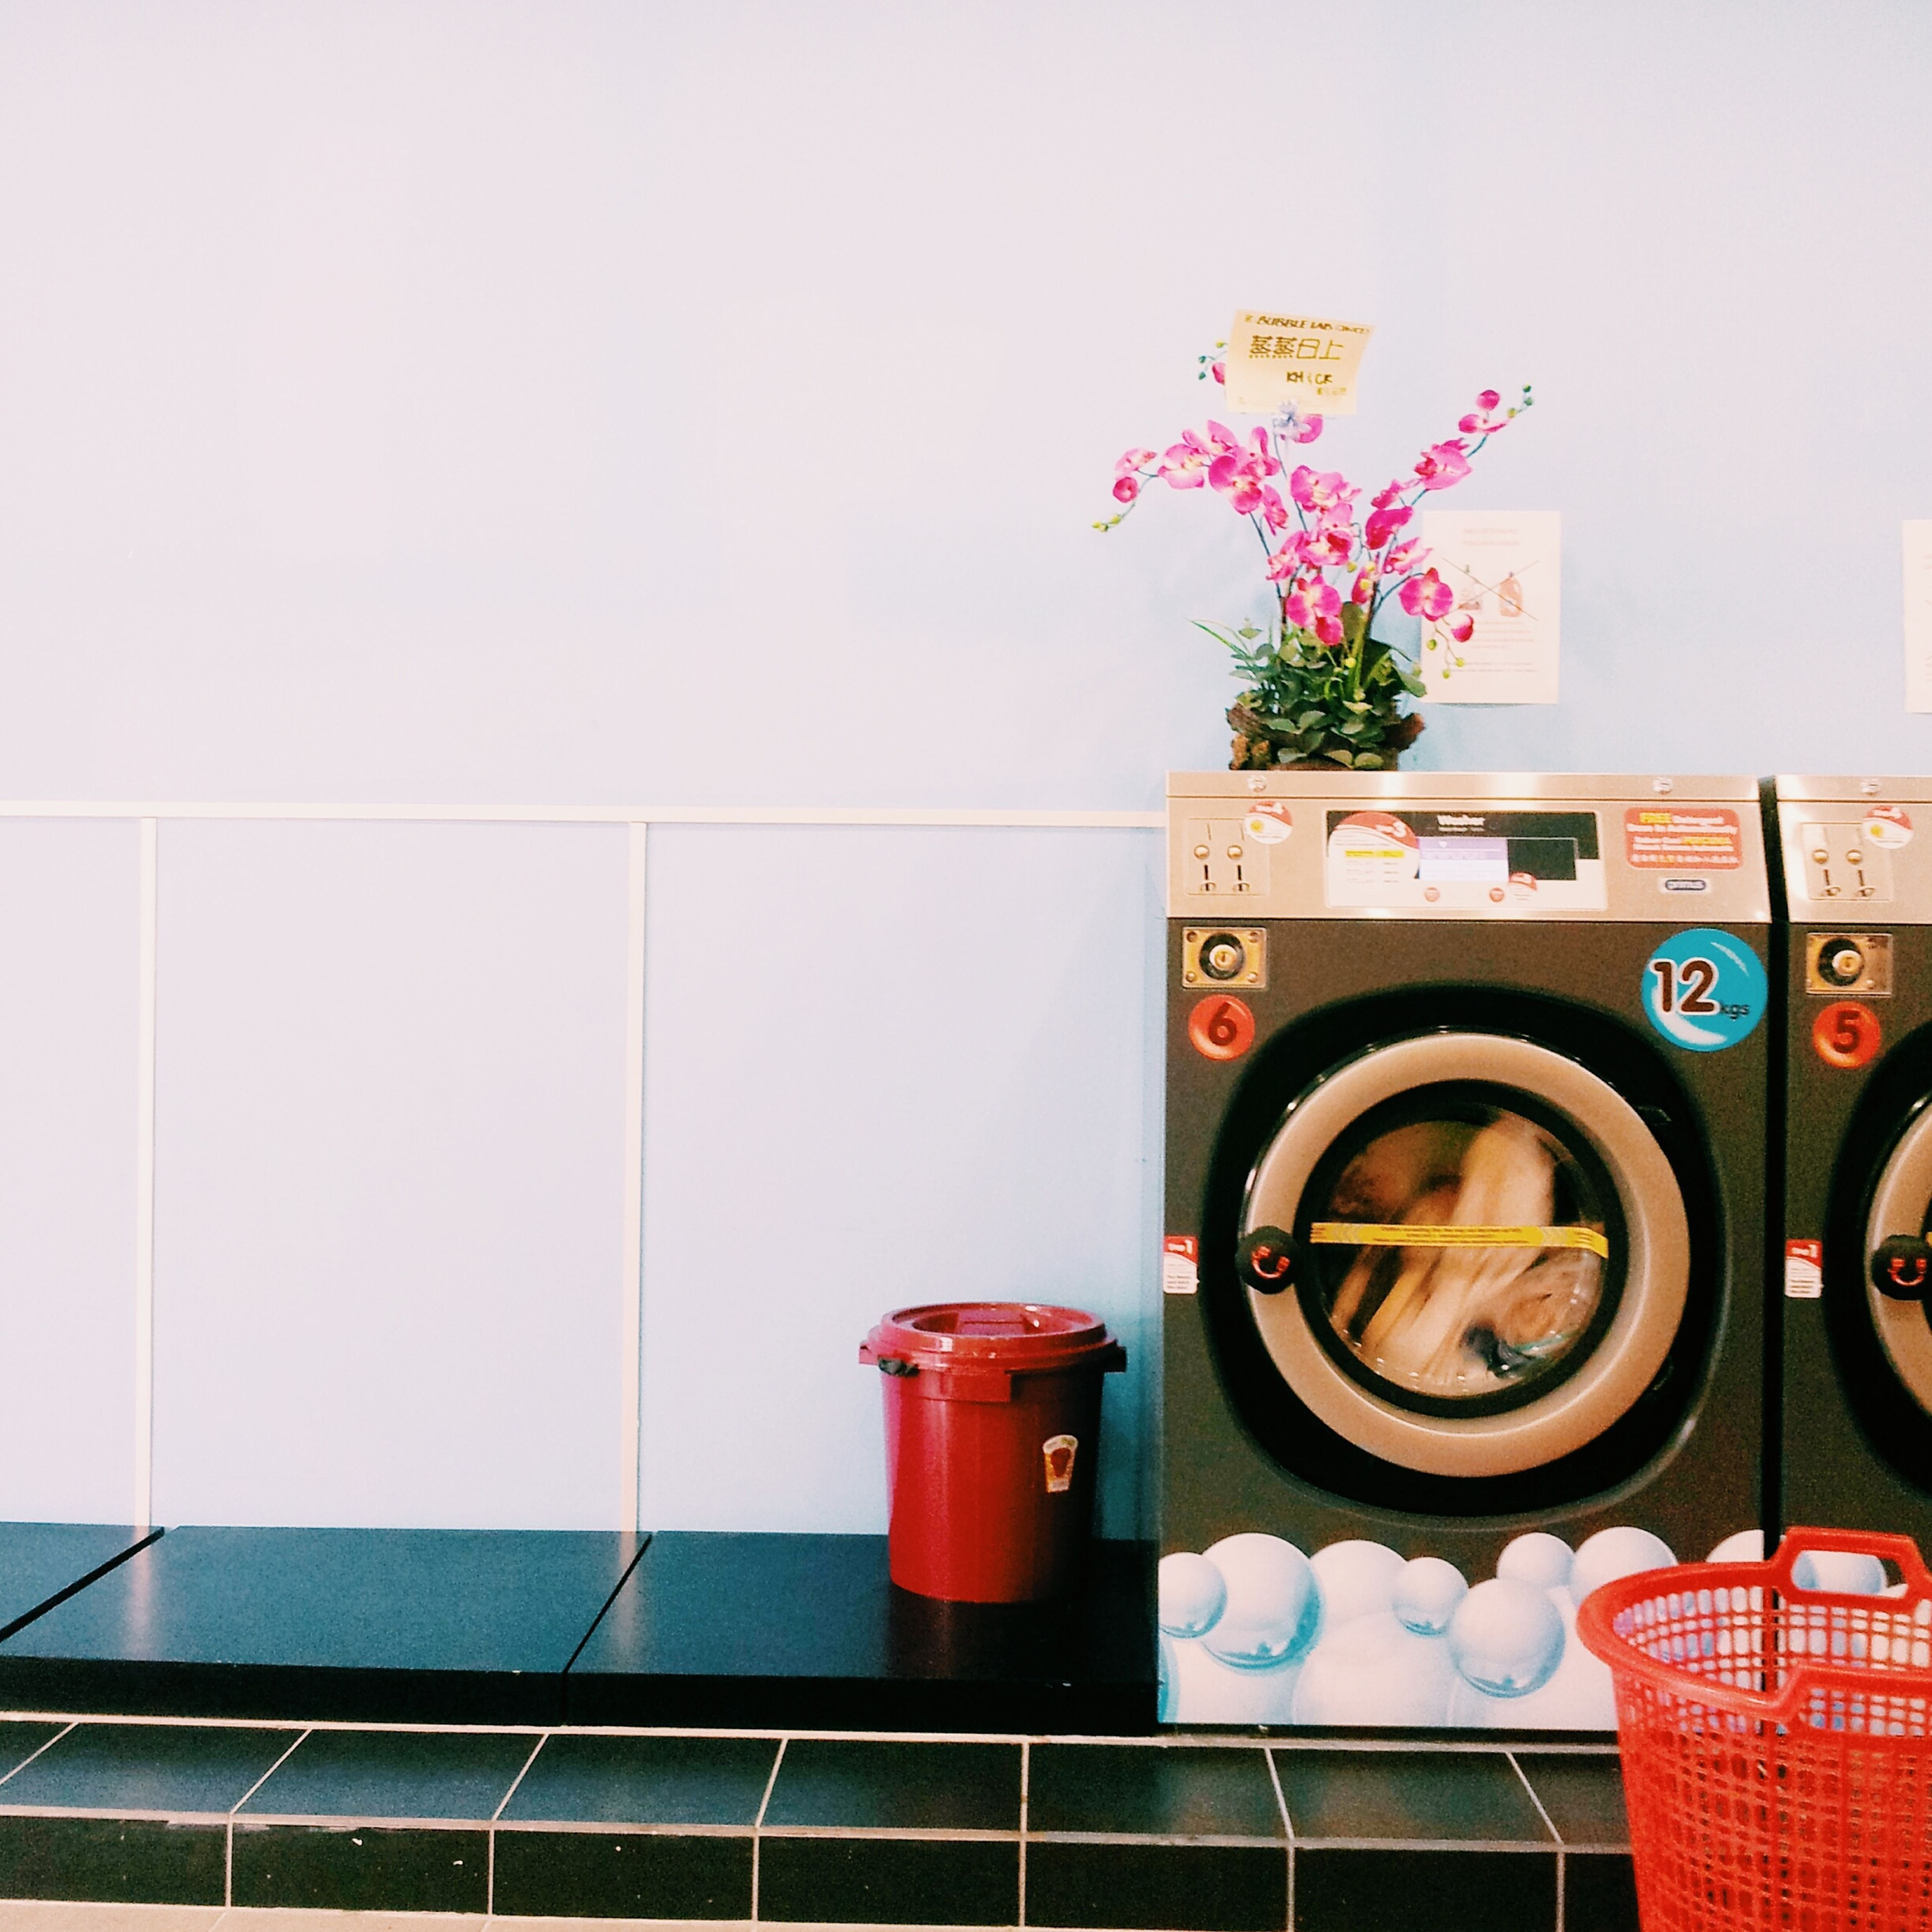 Laundry time Dry Cleaning Clothes Clean Clothes So Fresh, So Clean